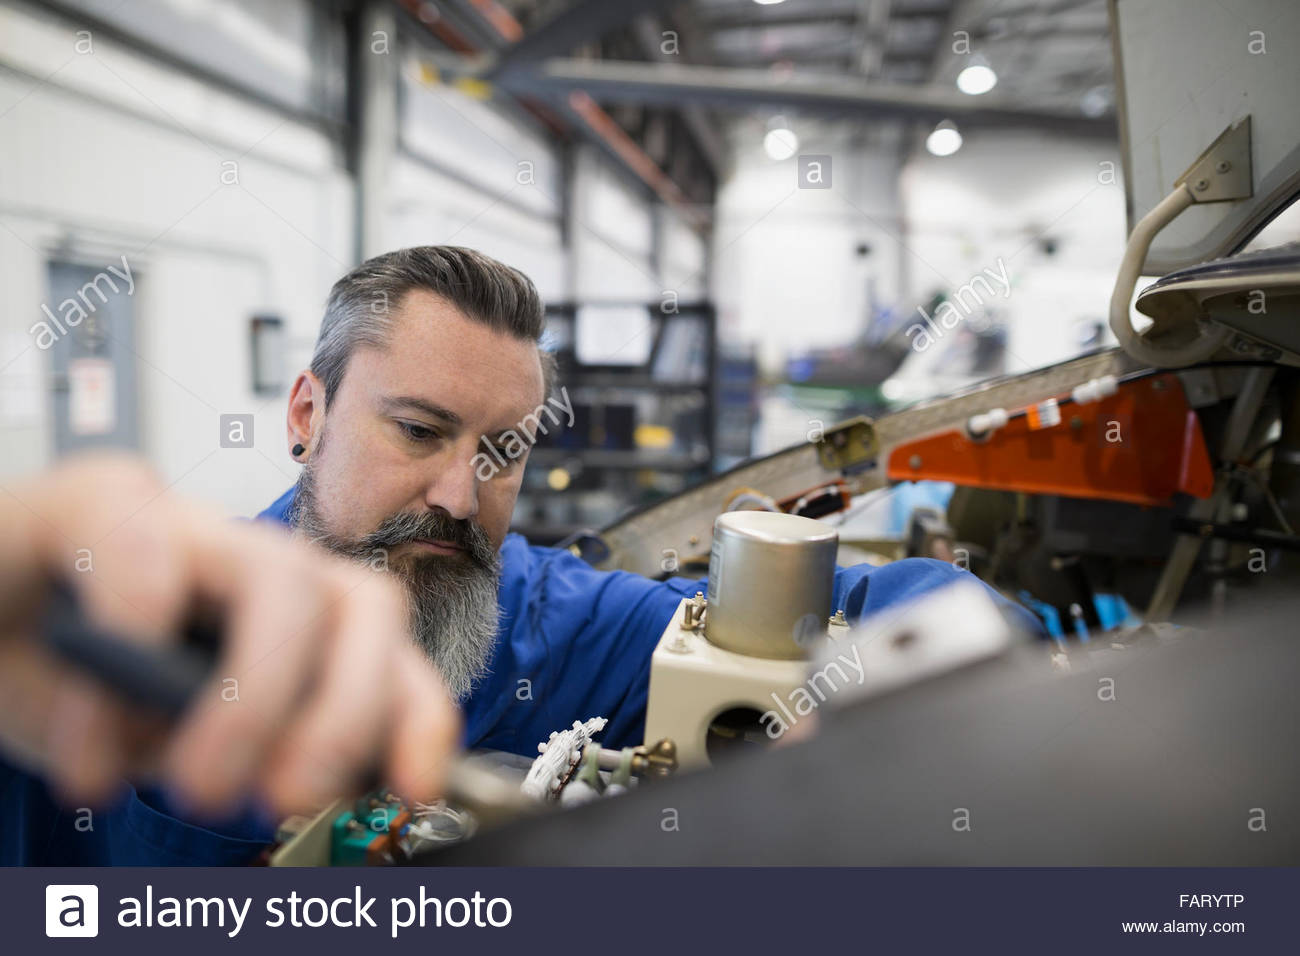 Helicopter mechanic repairing engine - Stock Image